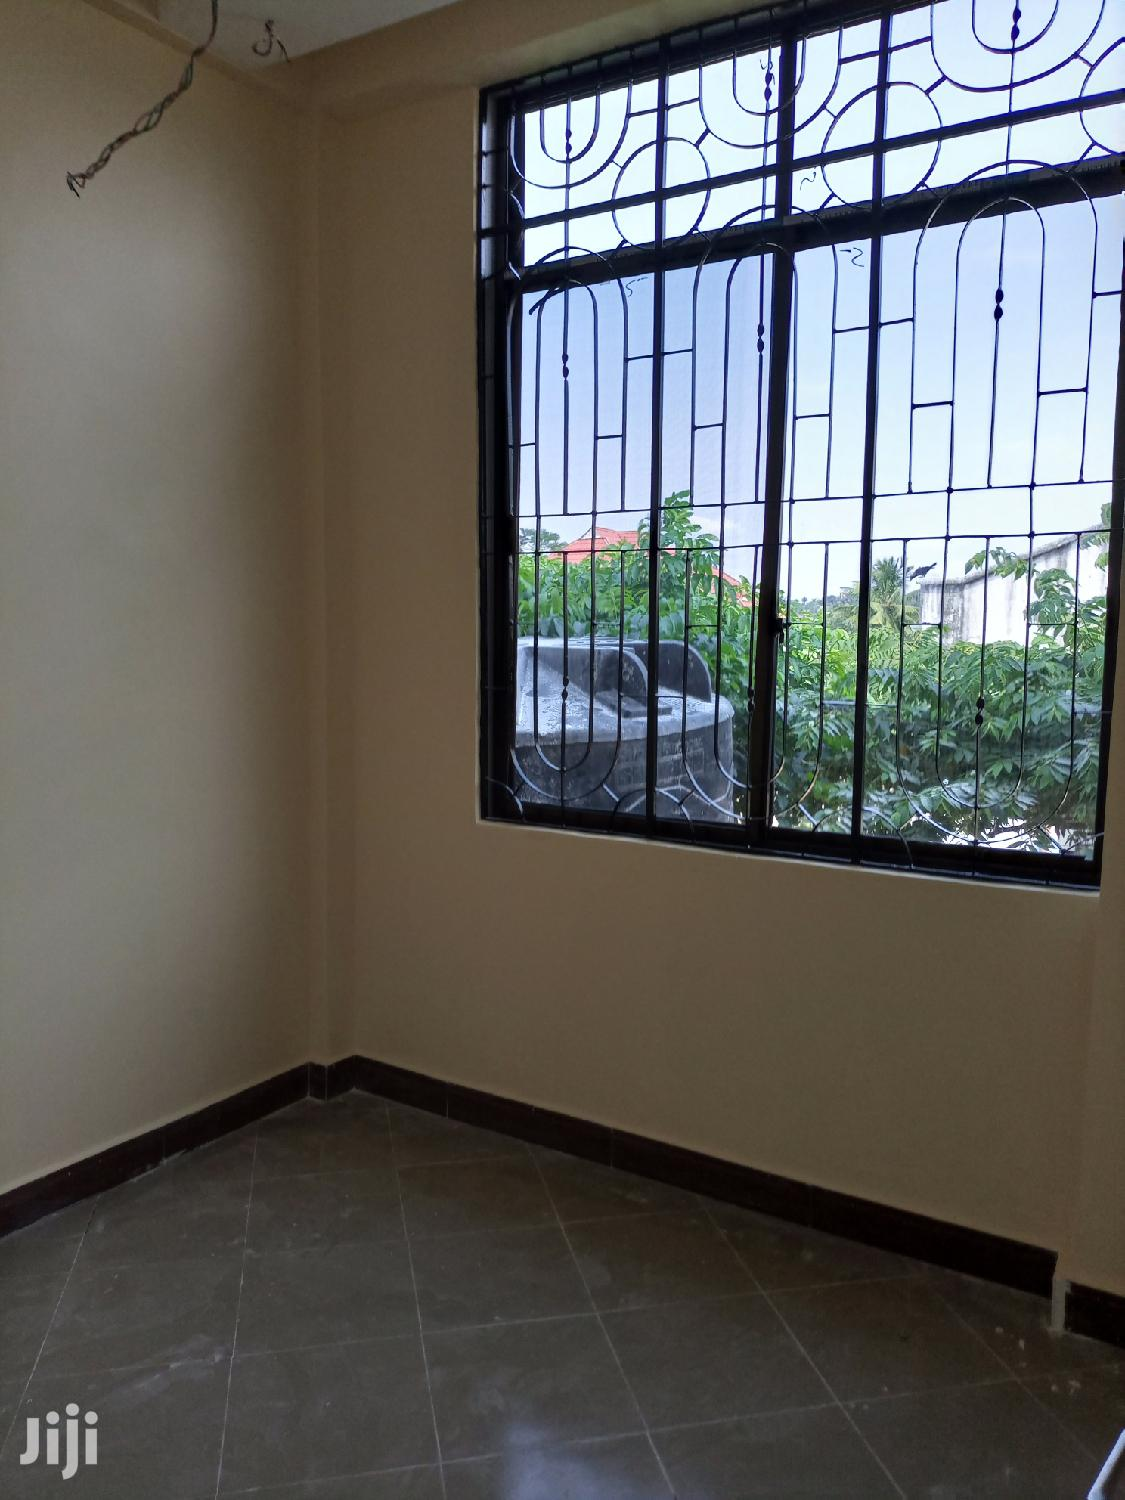 Single Bedroom House In Korogwe For Rent | Houses & Apartments For Rent for sale in Kinondoni, Dar es Salaam, Tanzania